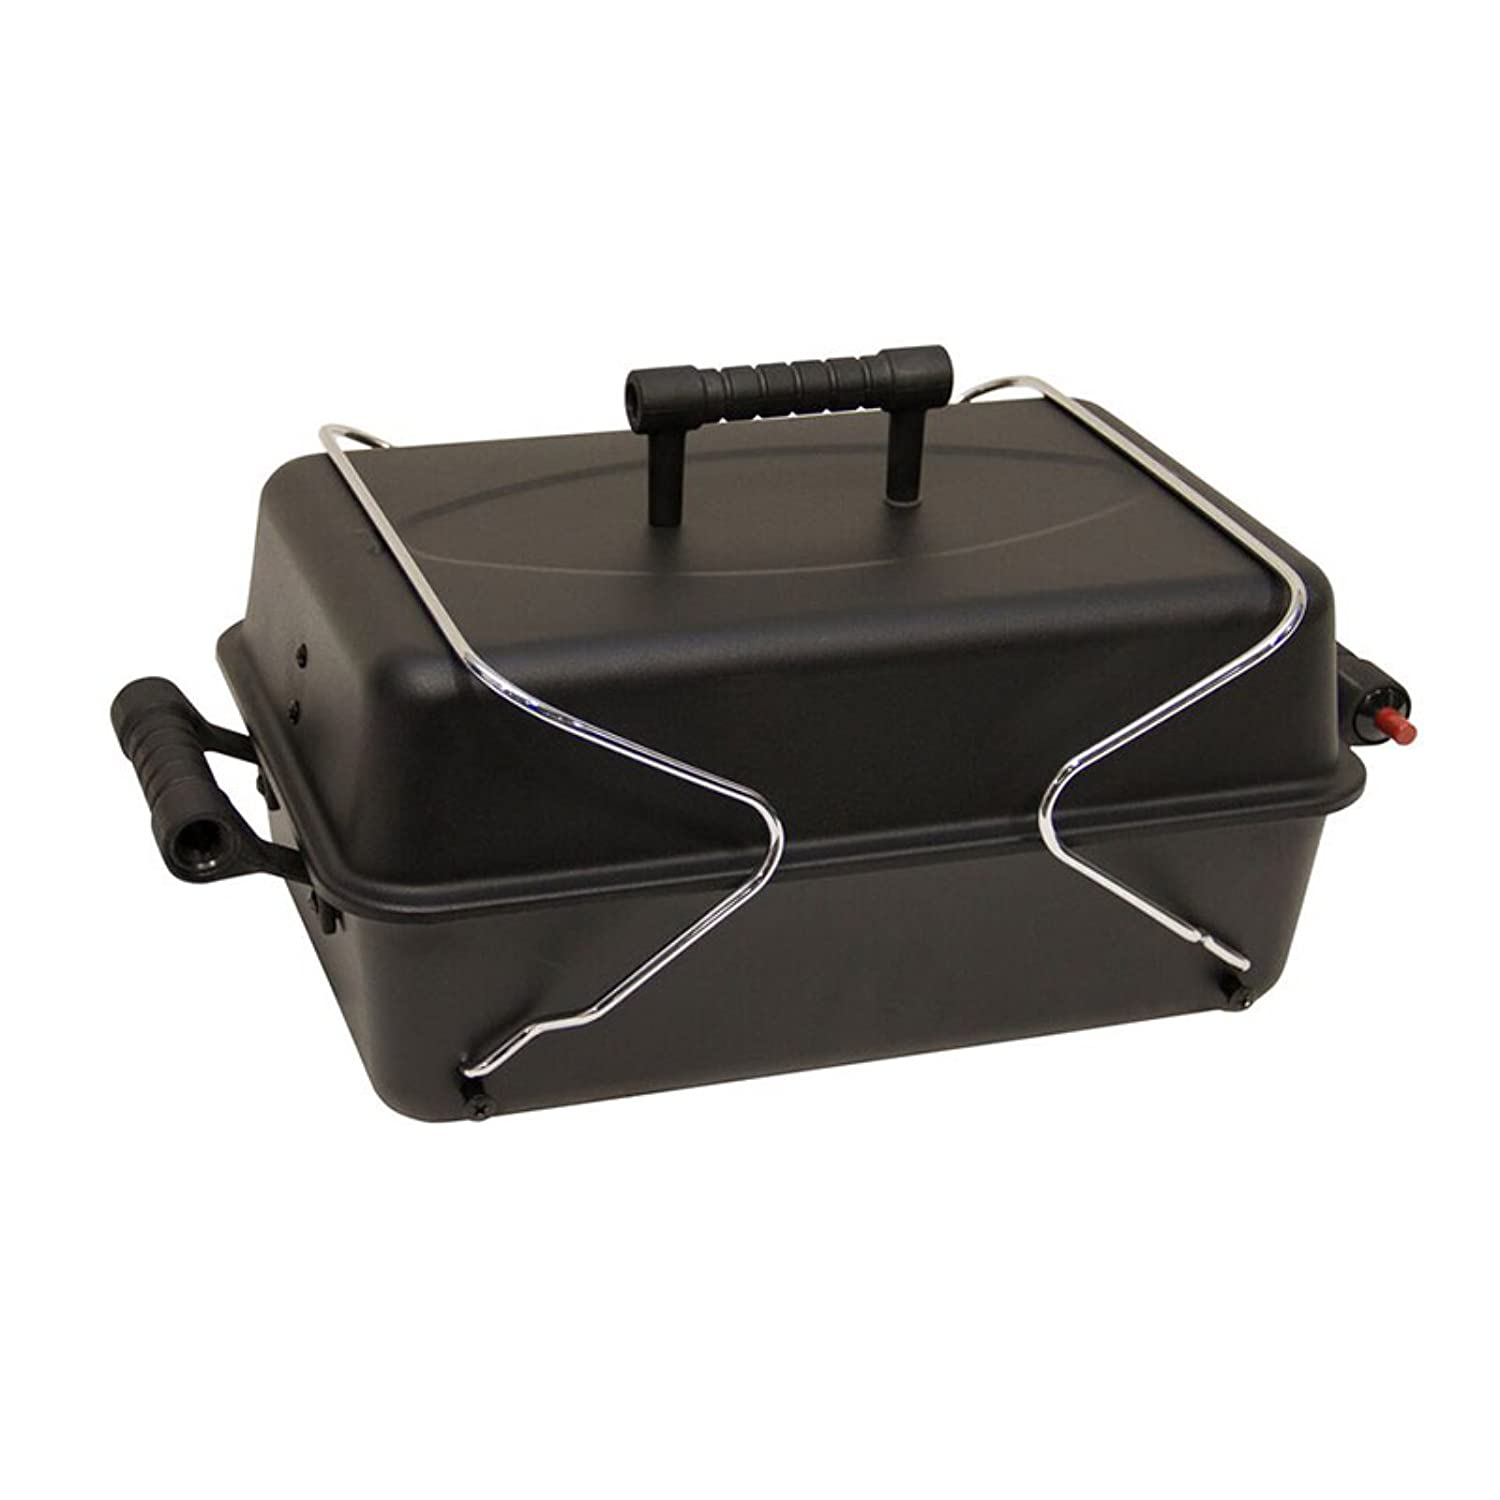 Char-Broil Gas Portable Tabletop Grill – Black